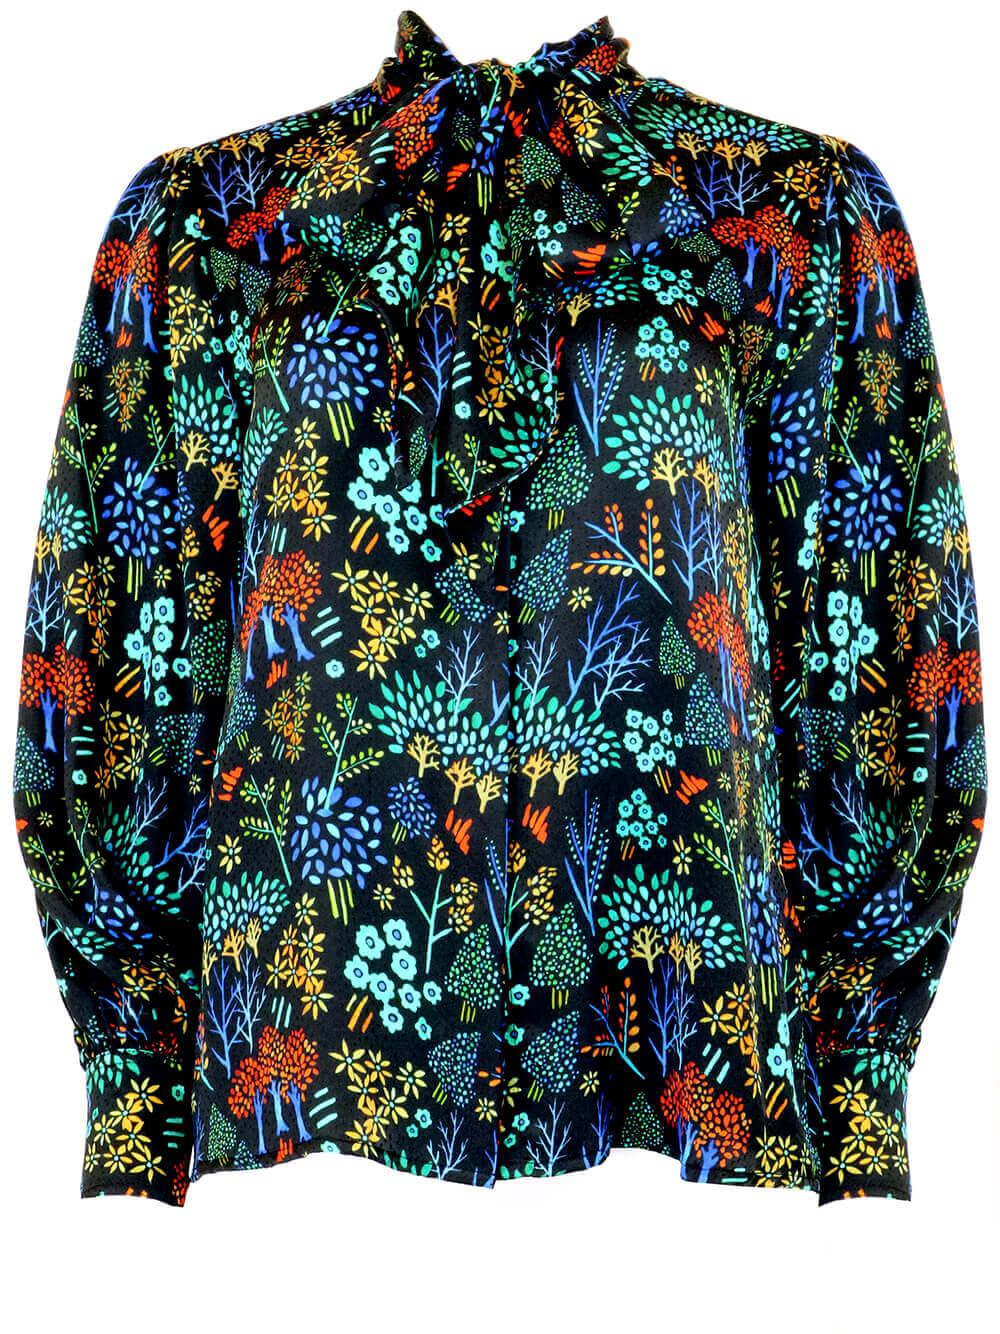 Finley Printed Blouse Item # 20FT31